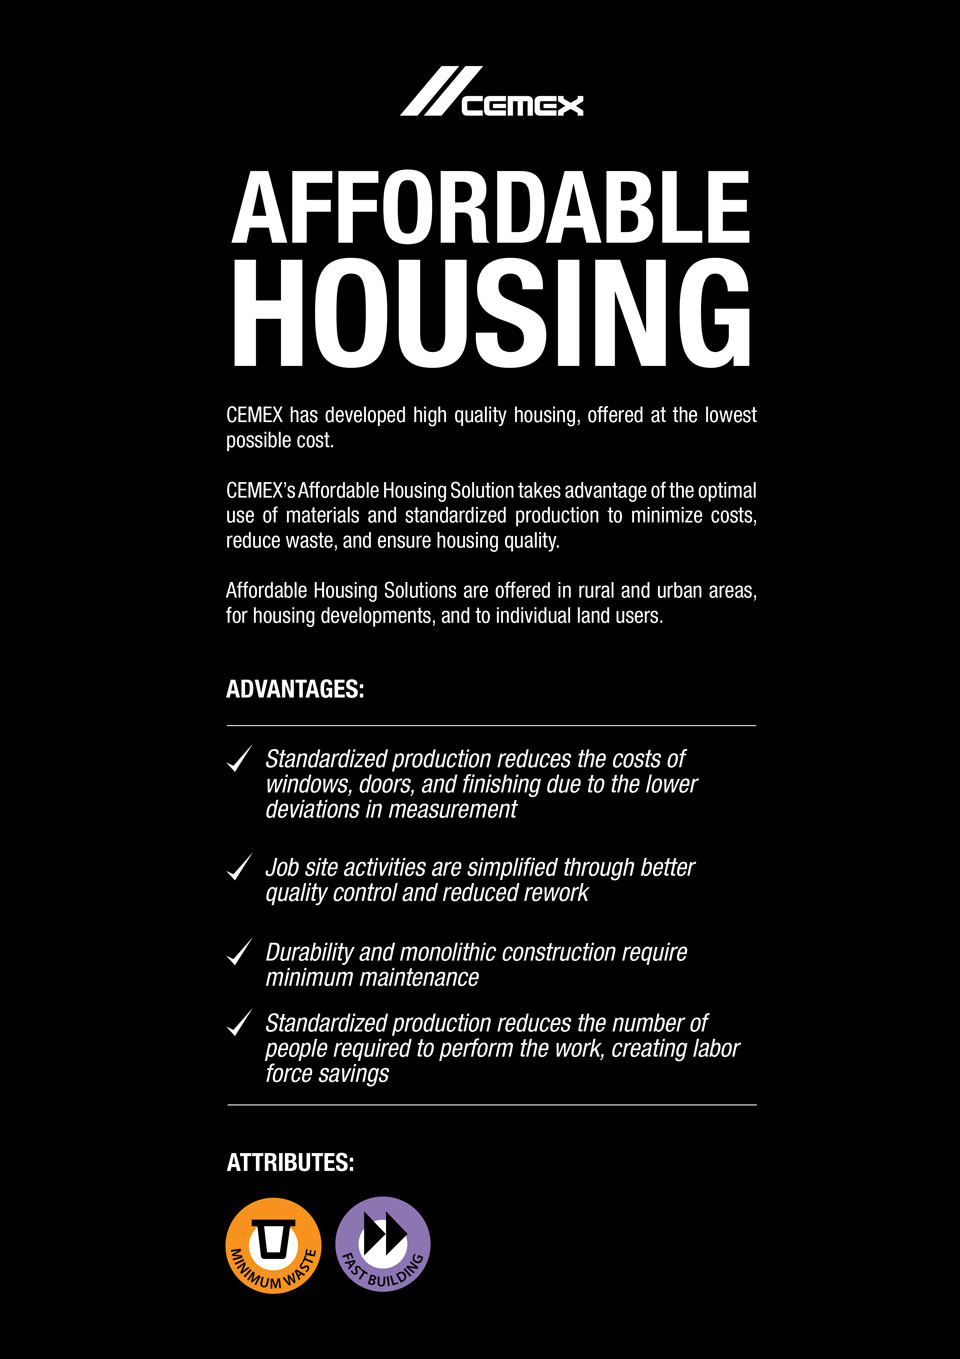 An image describing the advanages and characteristics of the Affordable Housing solution.